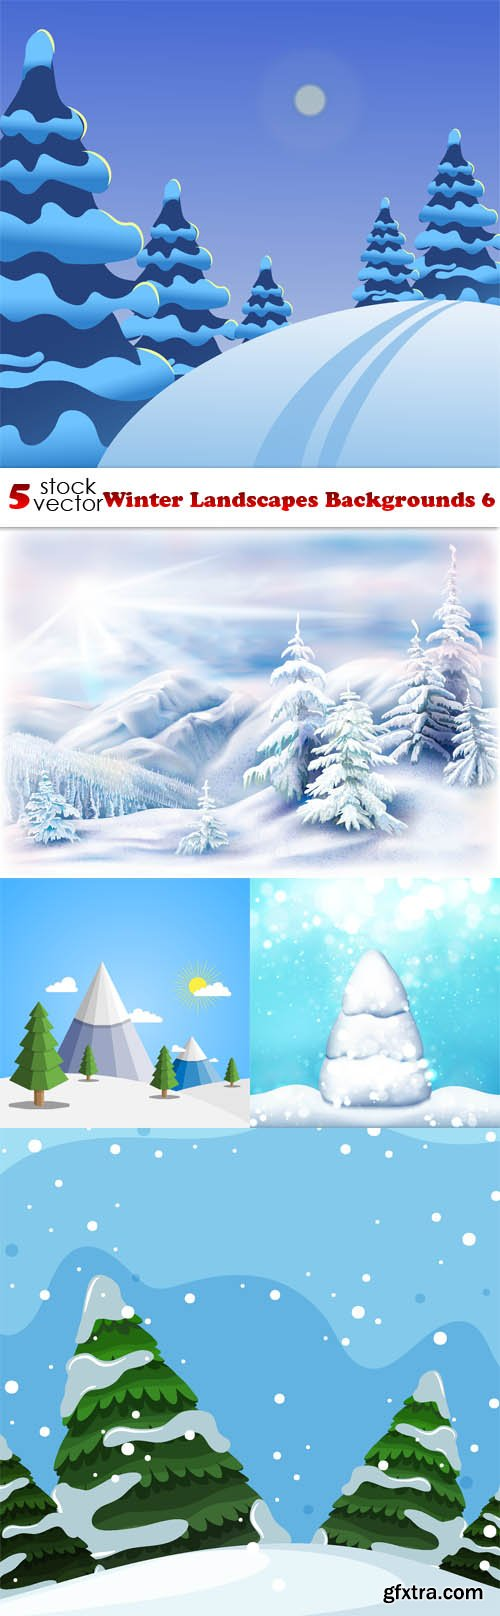 Vectors - Winter Landscapes Backgrounds 6